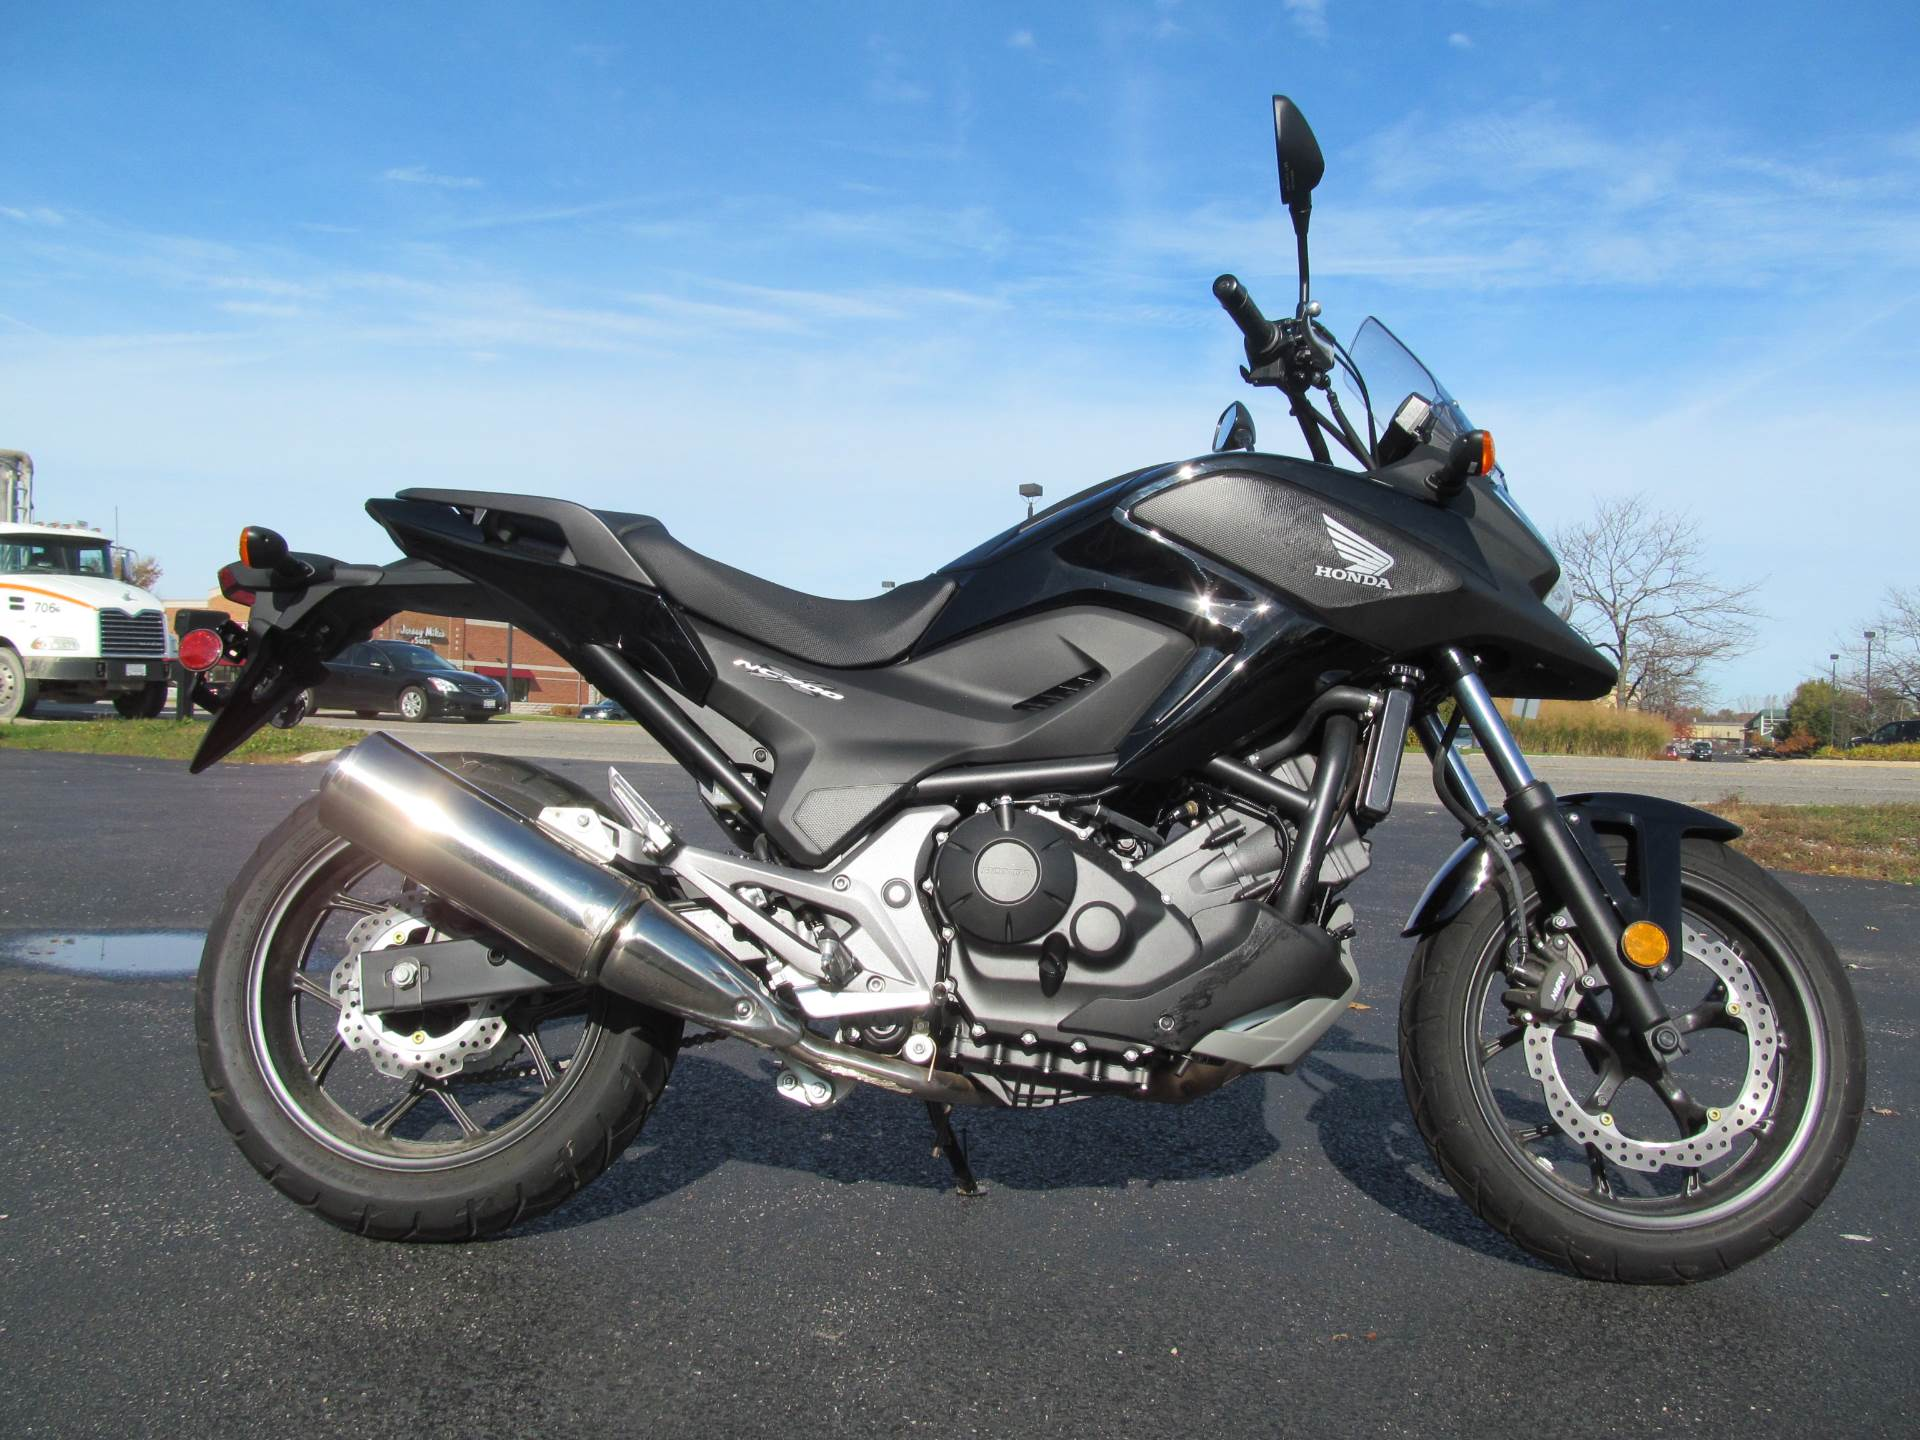 Used 2015 Honda Nc700x Motorcycles In Crystal Lake Il Stock